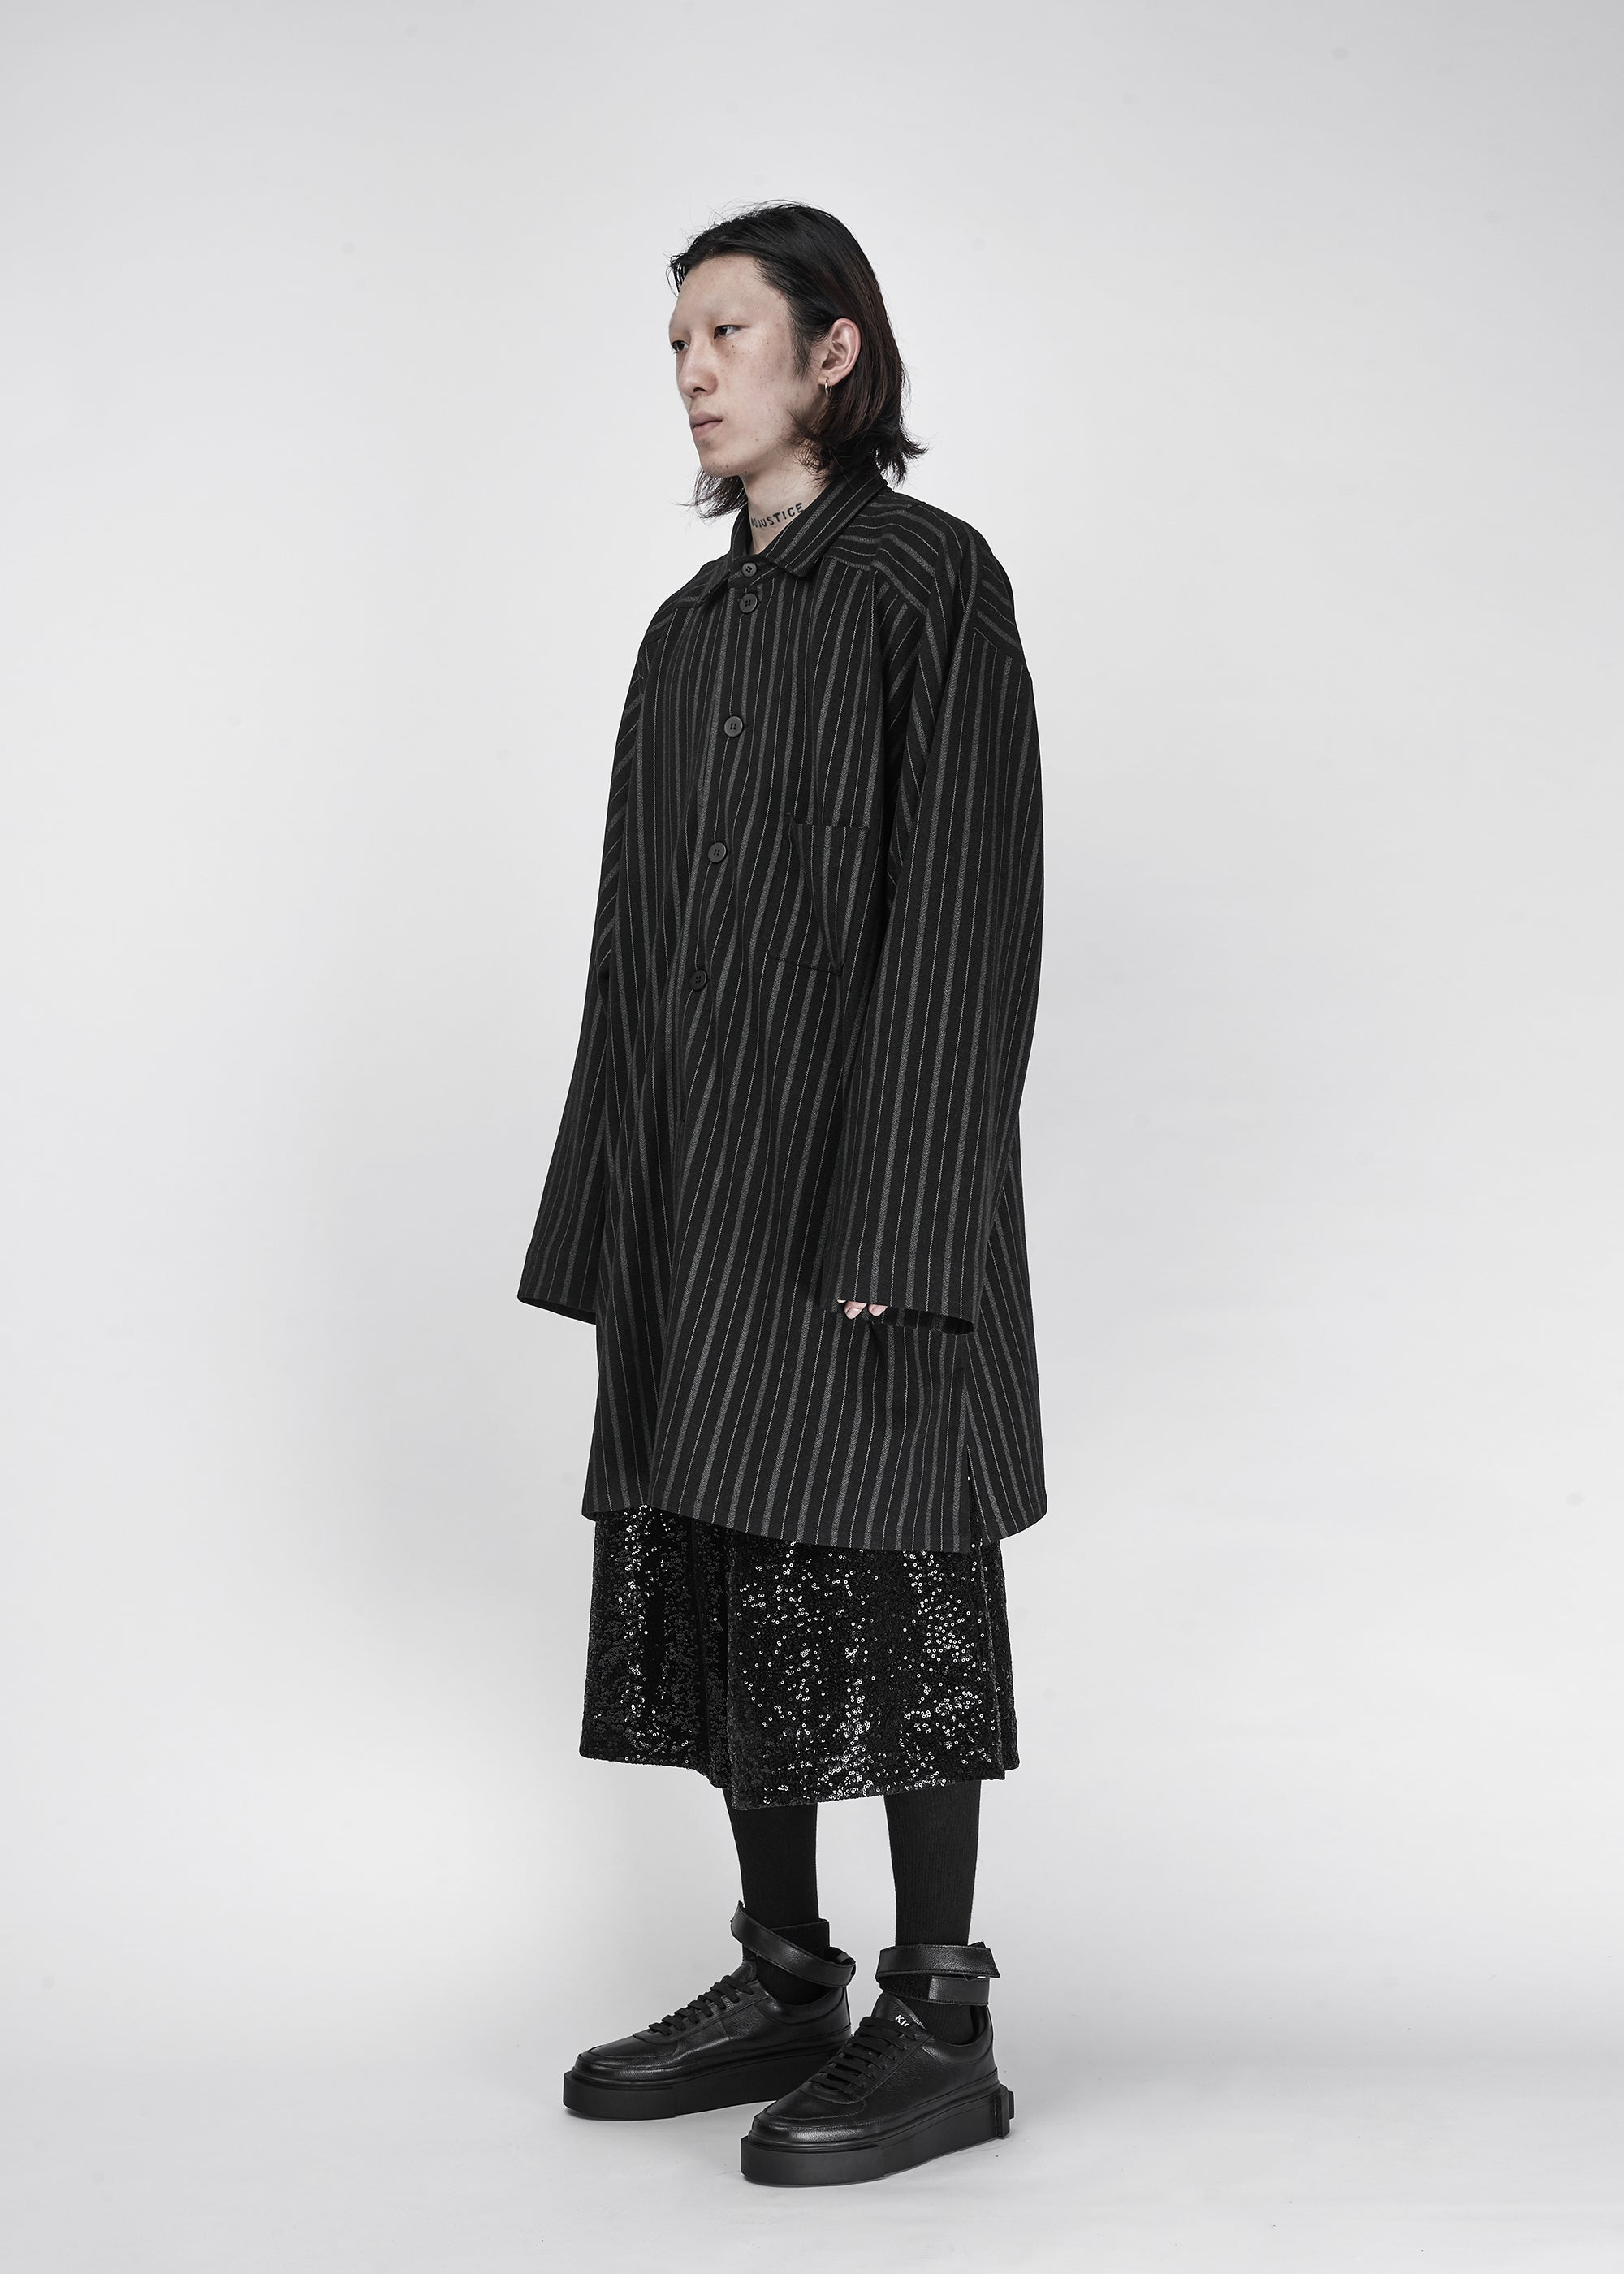 The Dirty Collection Oversized Strip Shirt - CGNY